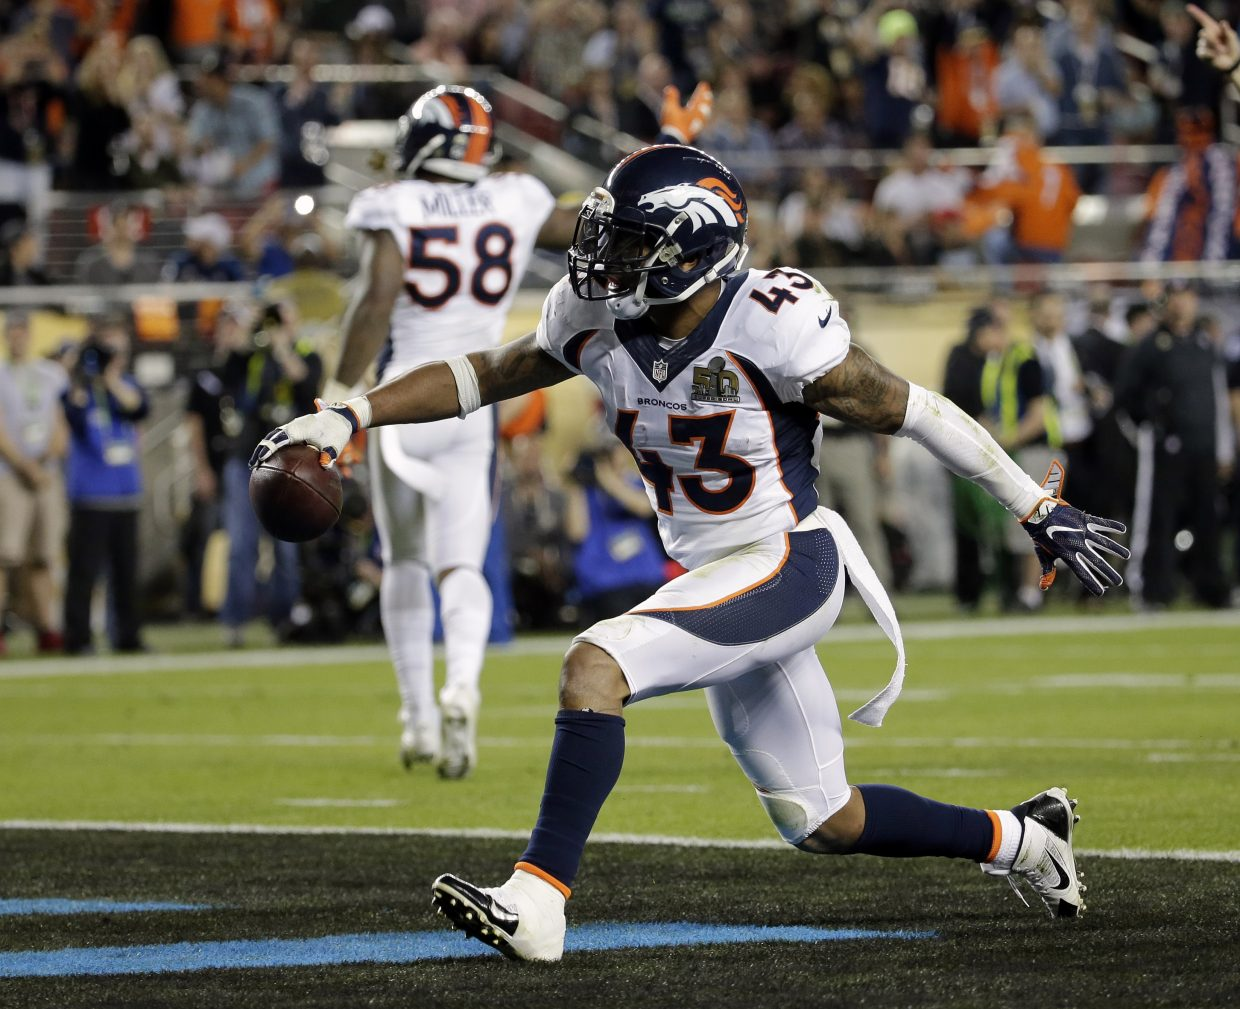 Denver Broncos' T.J. Ward (43) celebrates after recovering a fumble during the second half of the NFL Super Bowl 50 football game Sunday, Feb. 7, 2016, in Santa Clara, Calif. (AP Photo/Matt York)